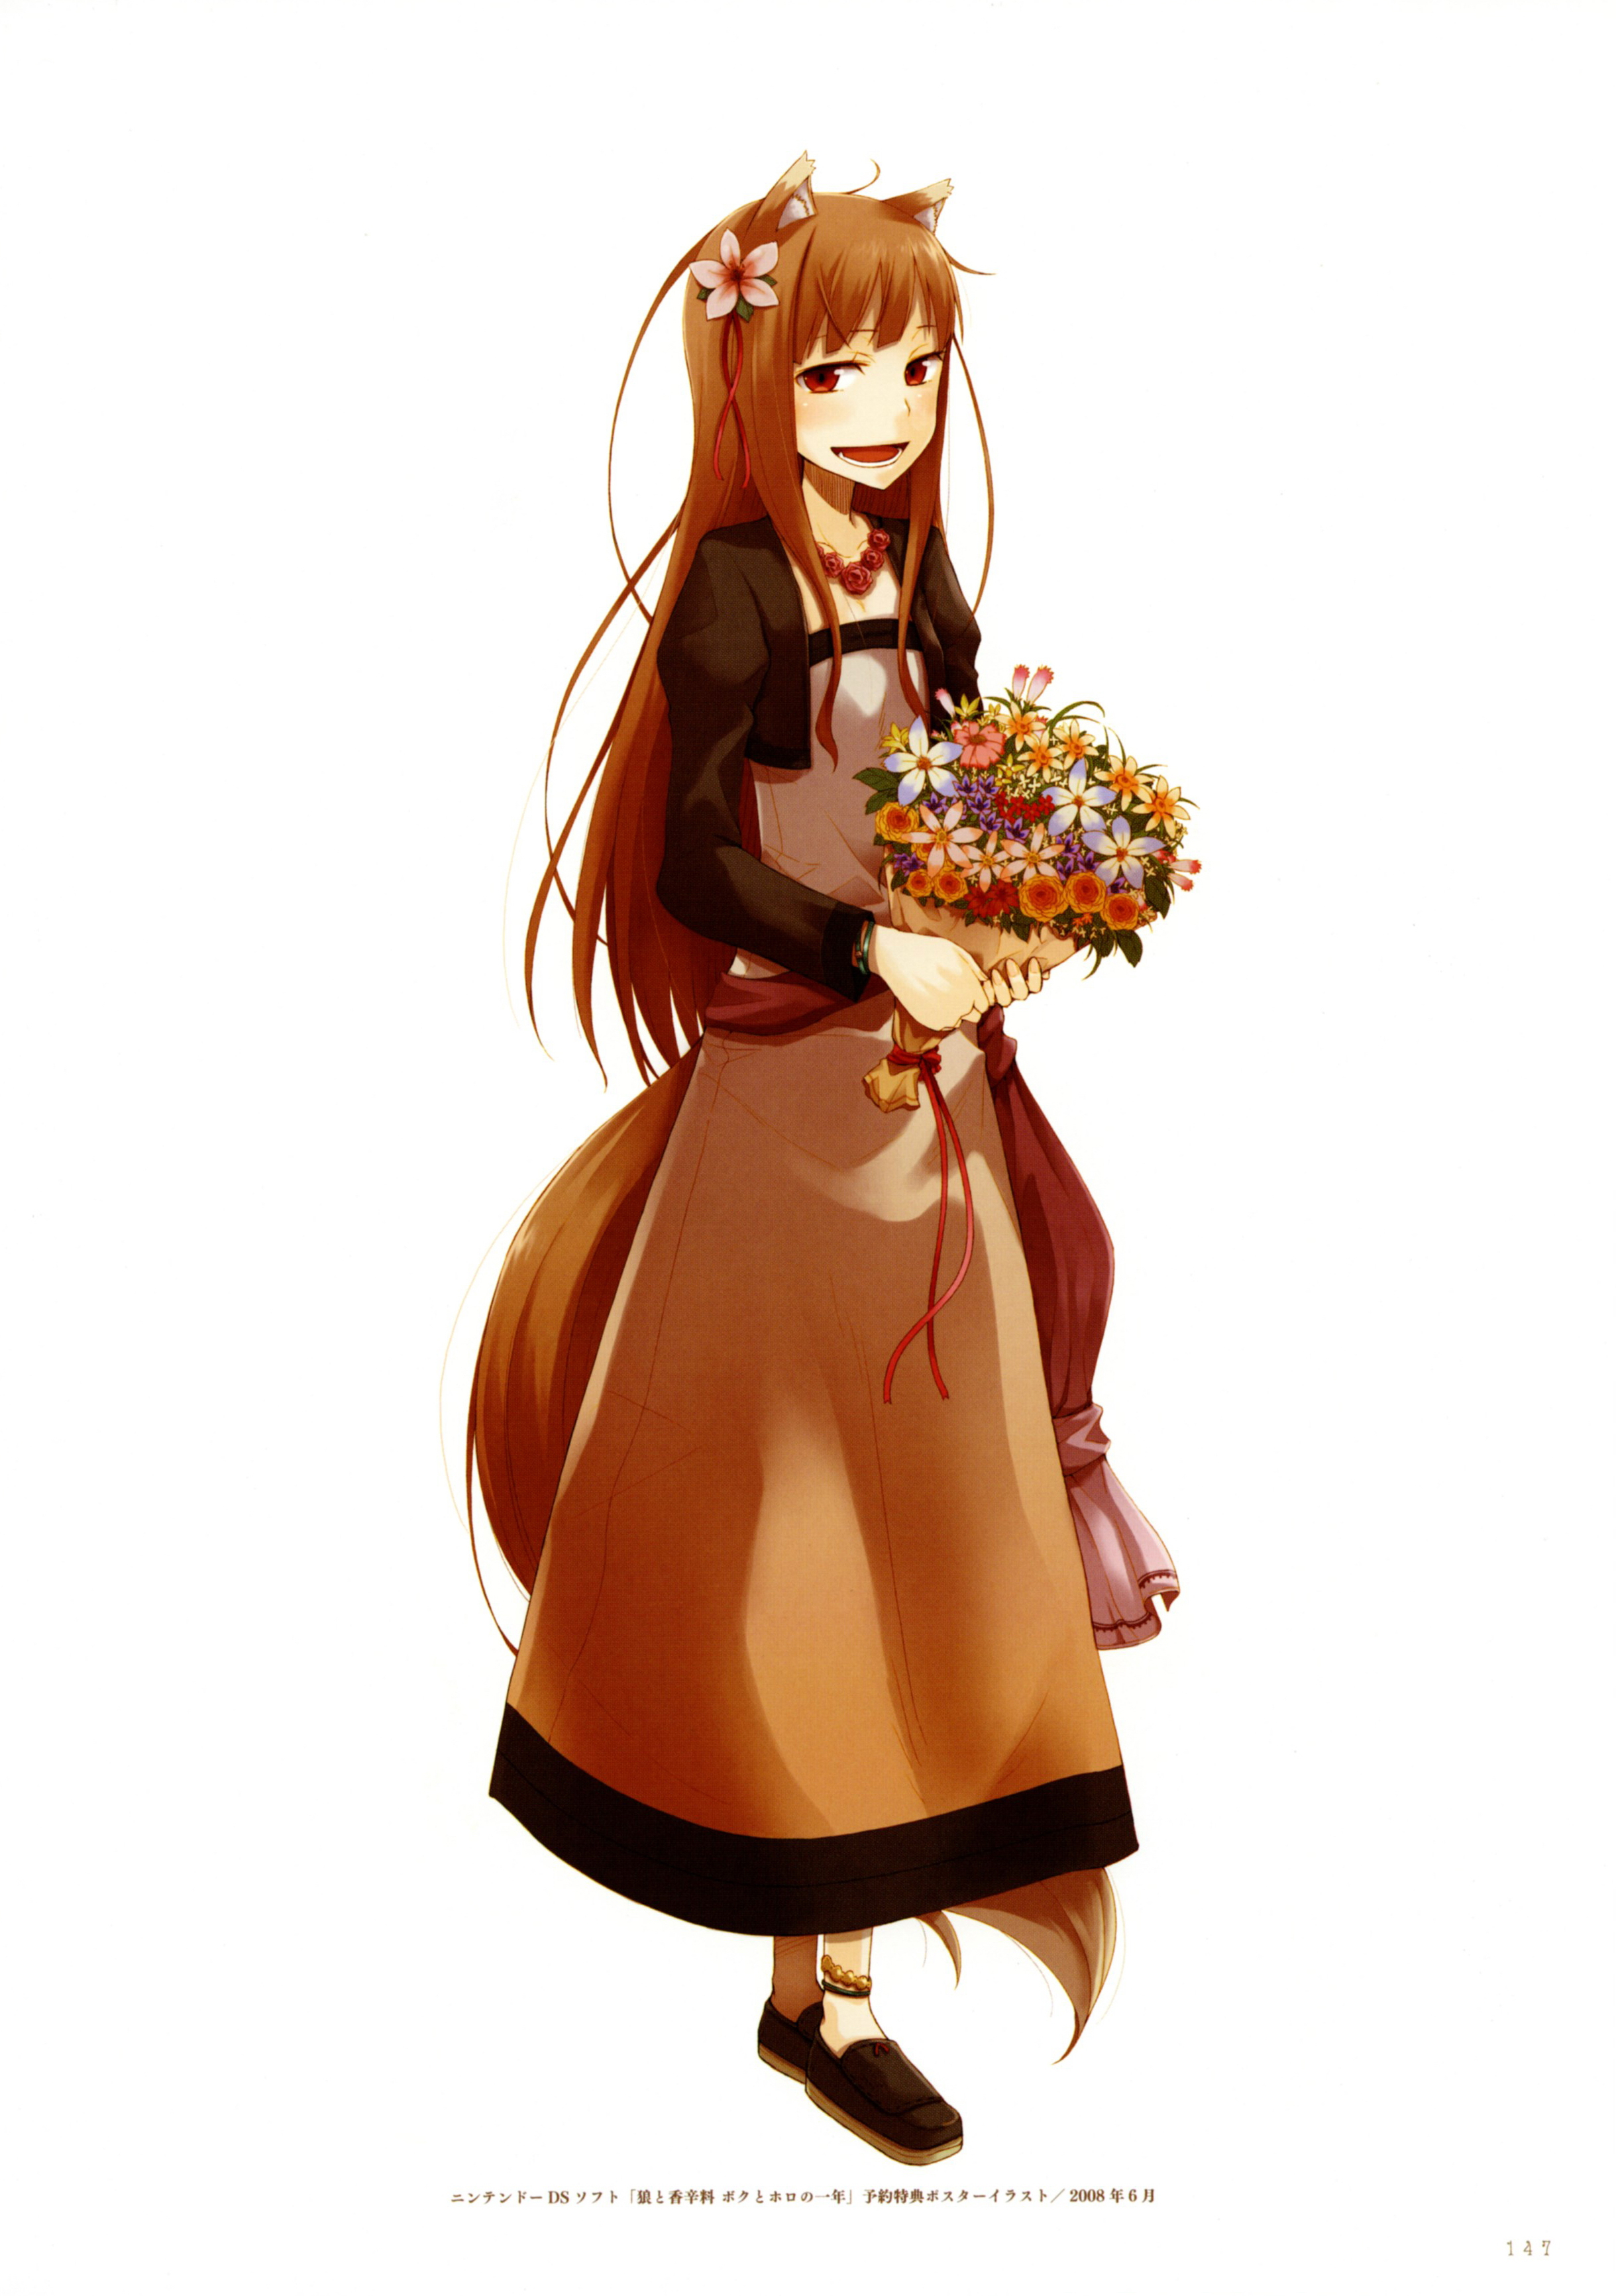 spice and wolf - ayakura juu illustrations - ookami to koushinryou